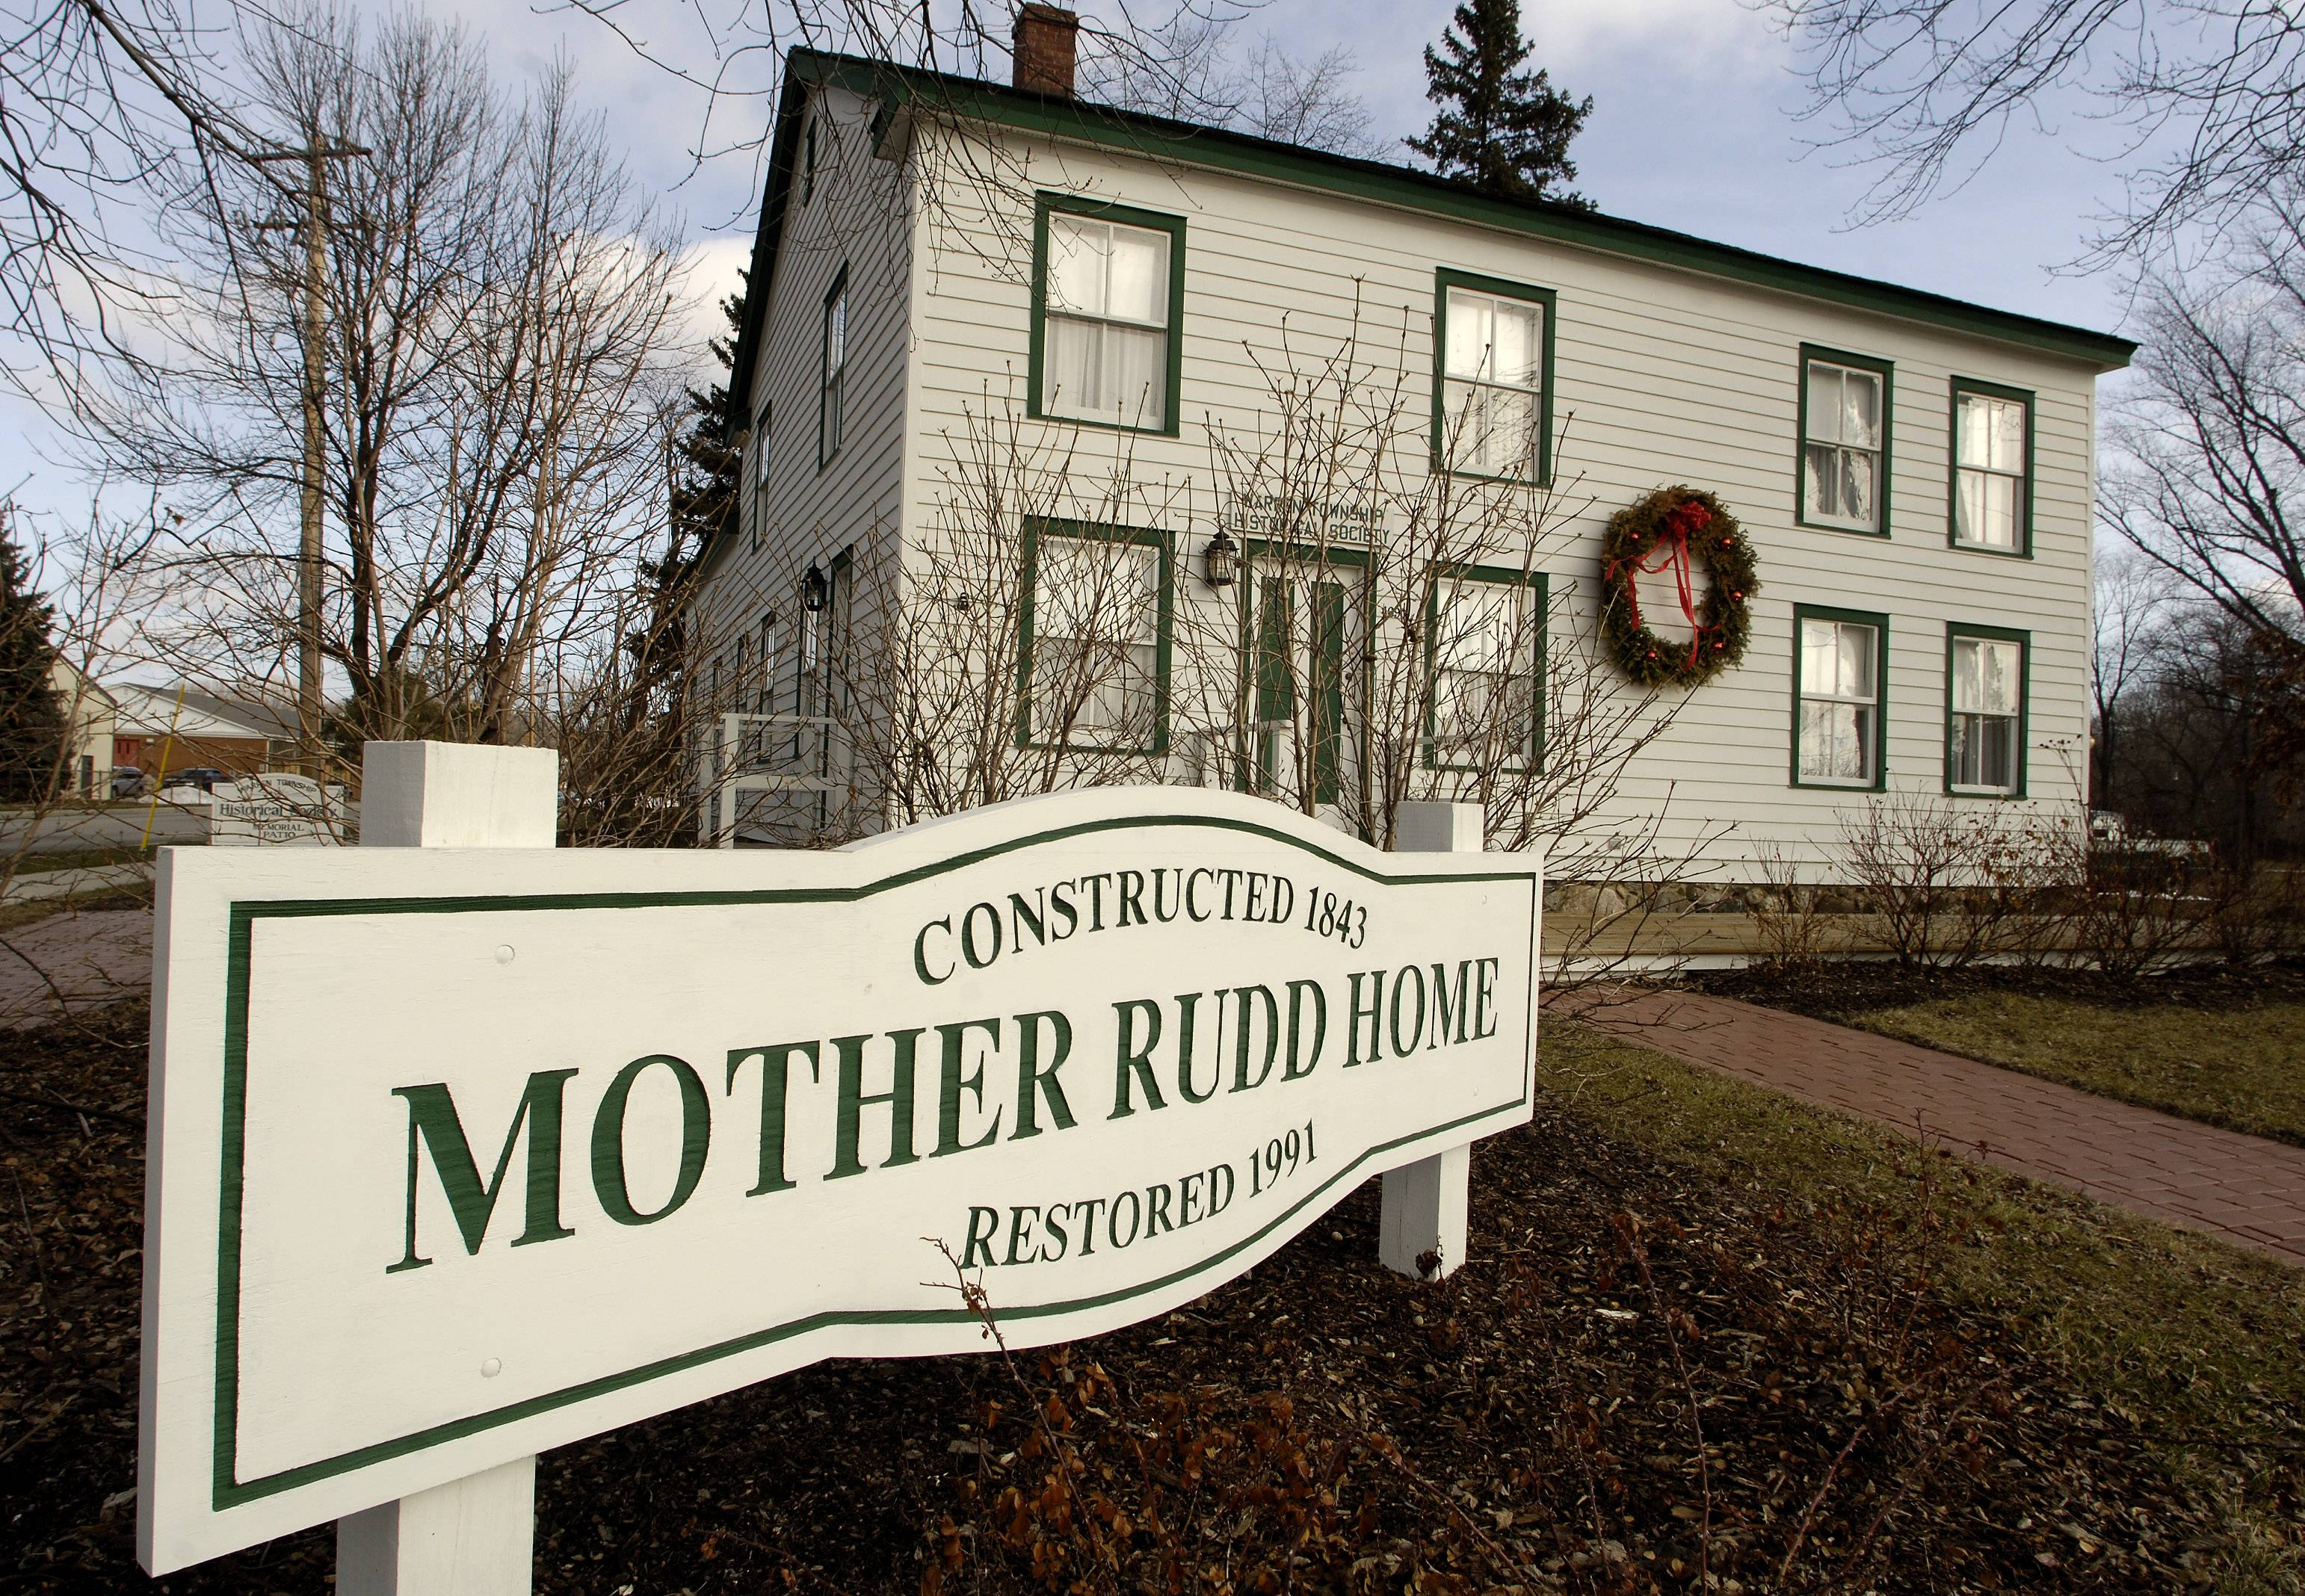 The Mother Rudd Home in Gurnee sheltered slaves escaping to freedom via the Underground Railroad.